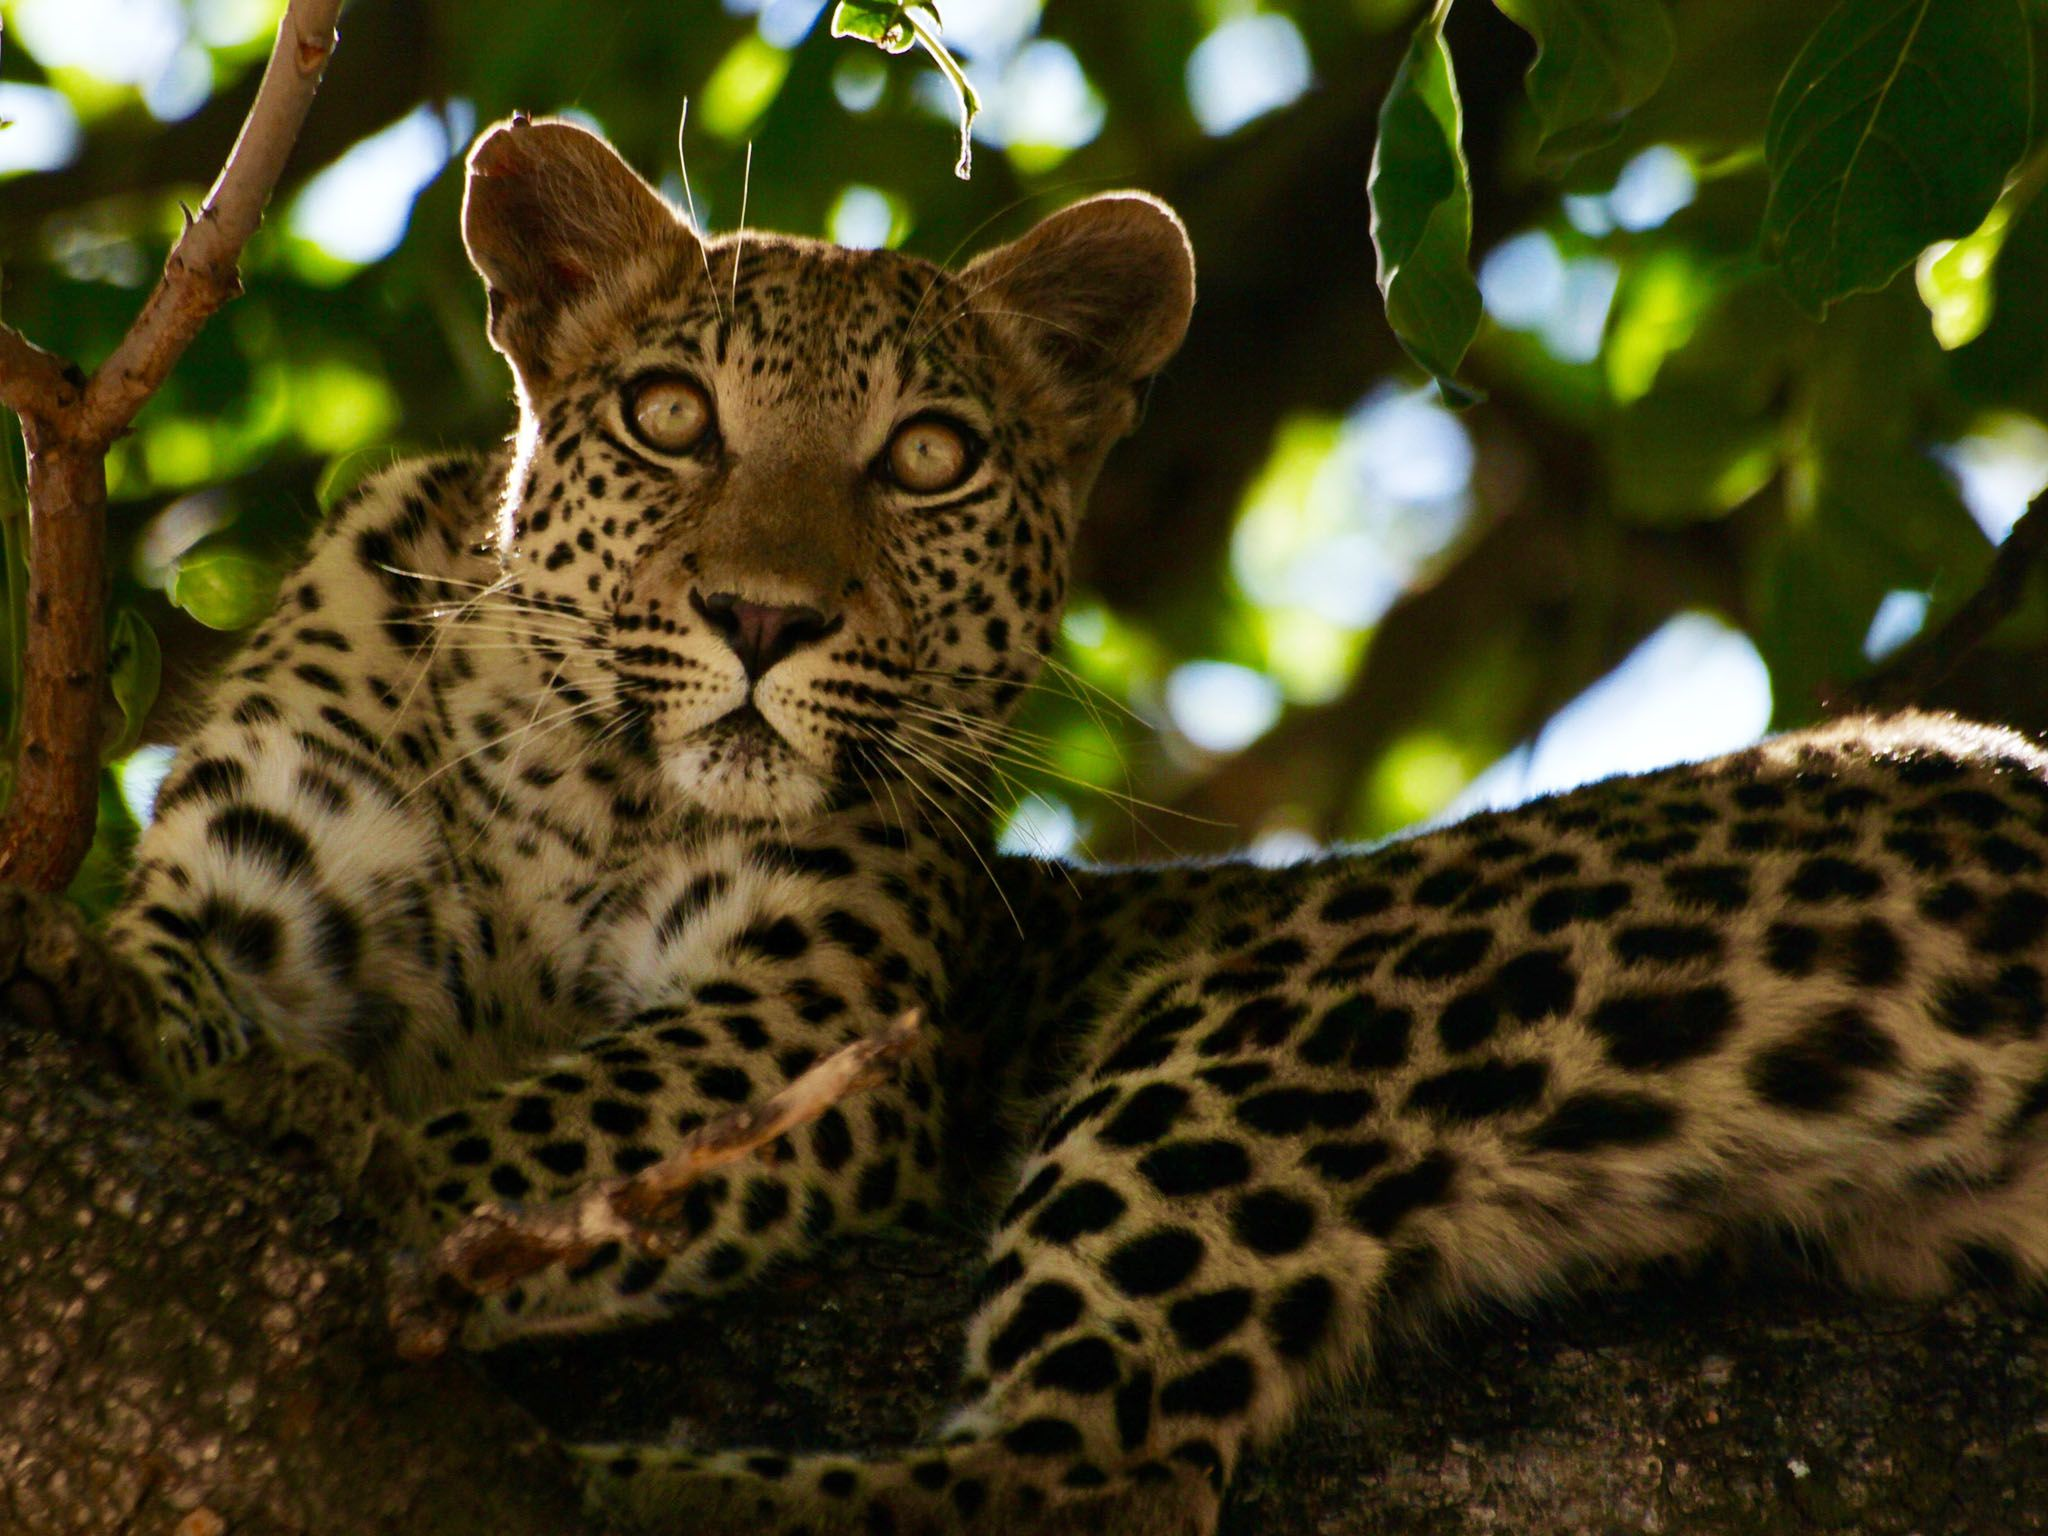 Botswana: Leopard lounging in tree. This image is from Safari Brothers. [Photo of the day - September 2016]